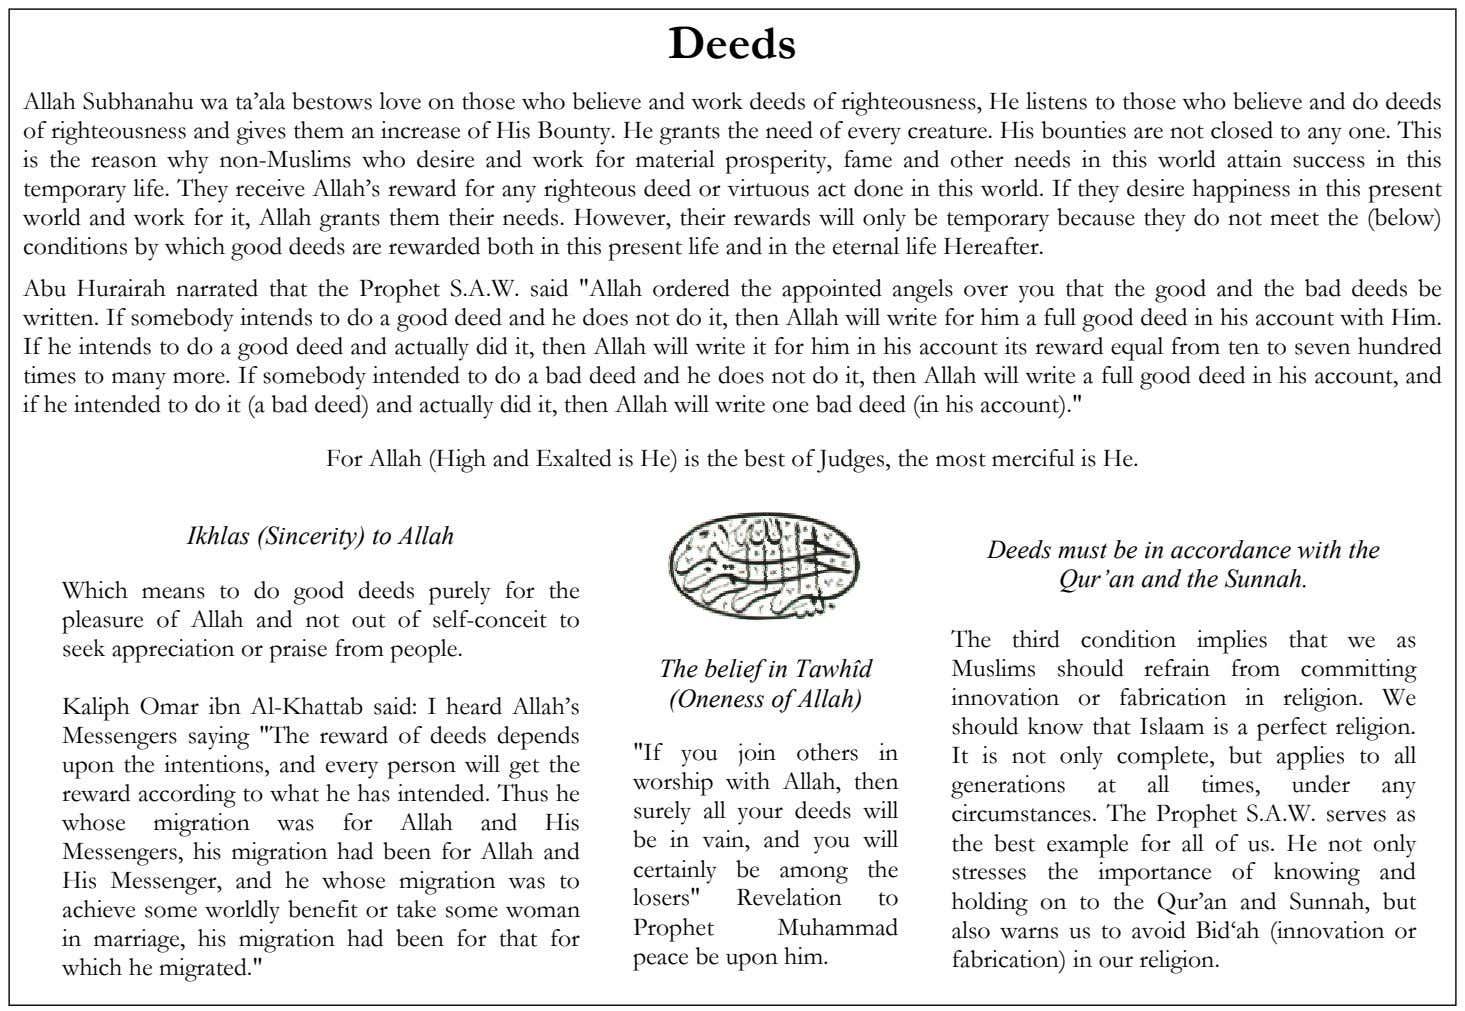 Deeds Allah Subhanahu wa ta'ala bestows love on those who believe and work deeds of righteousness,